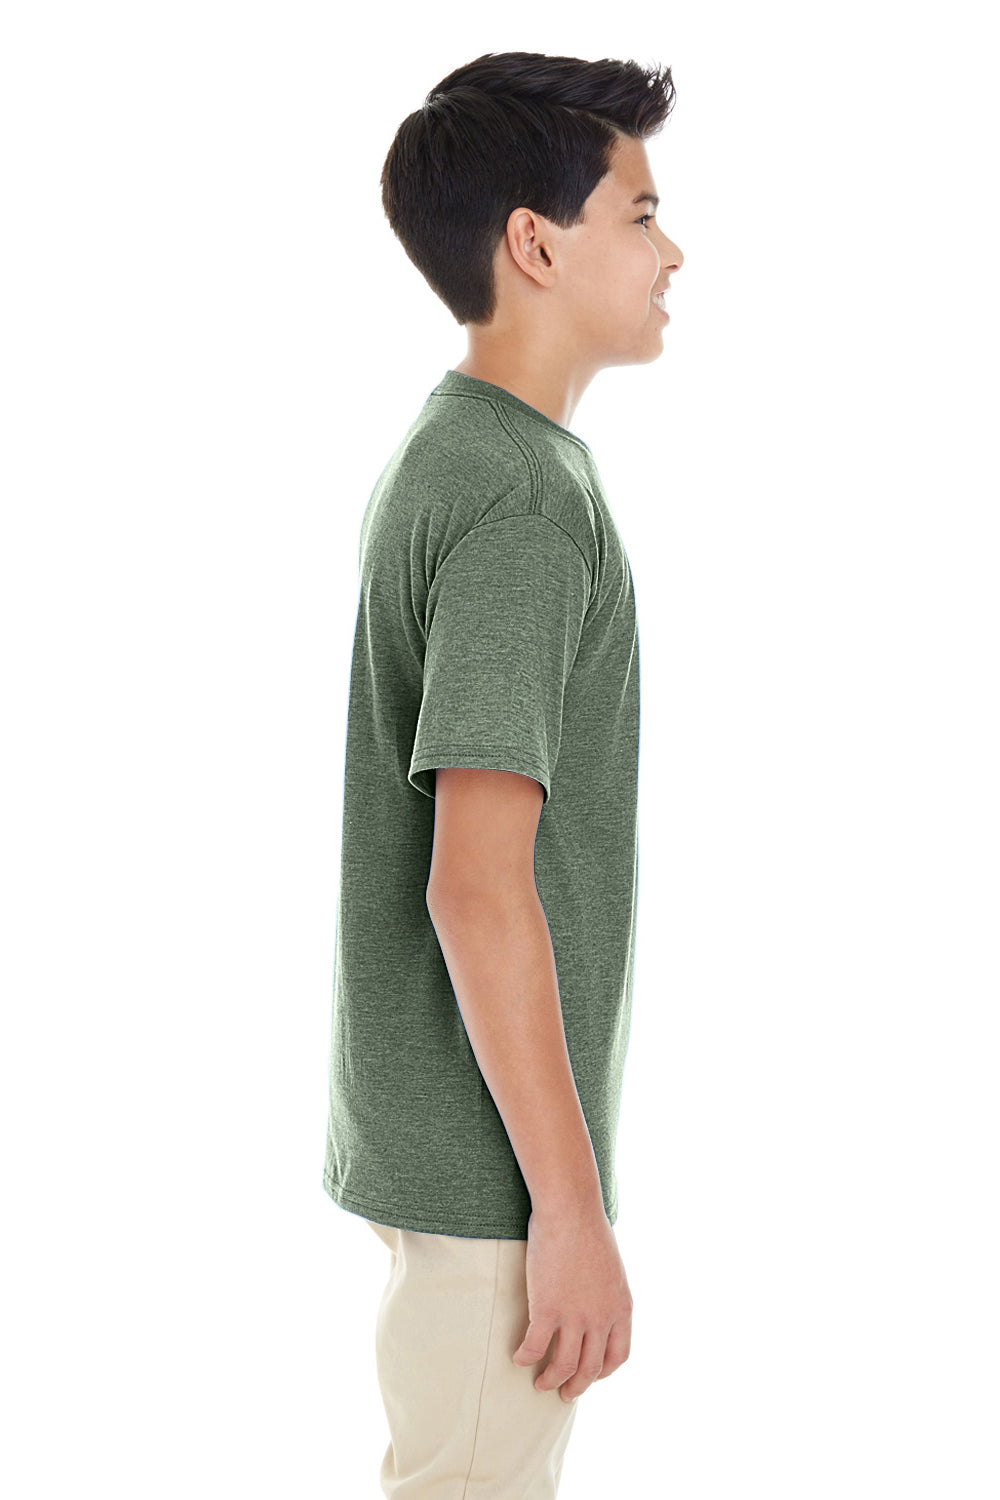 Gildan G645B Youth Softstyle Short Sleeve Crewneck T-Shirt Heather Military Green Side